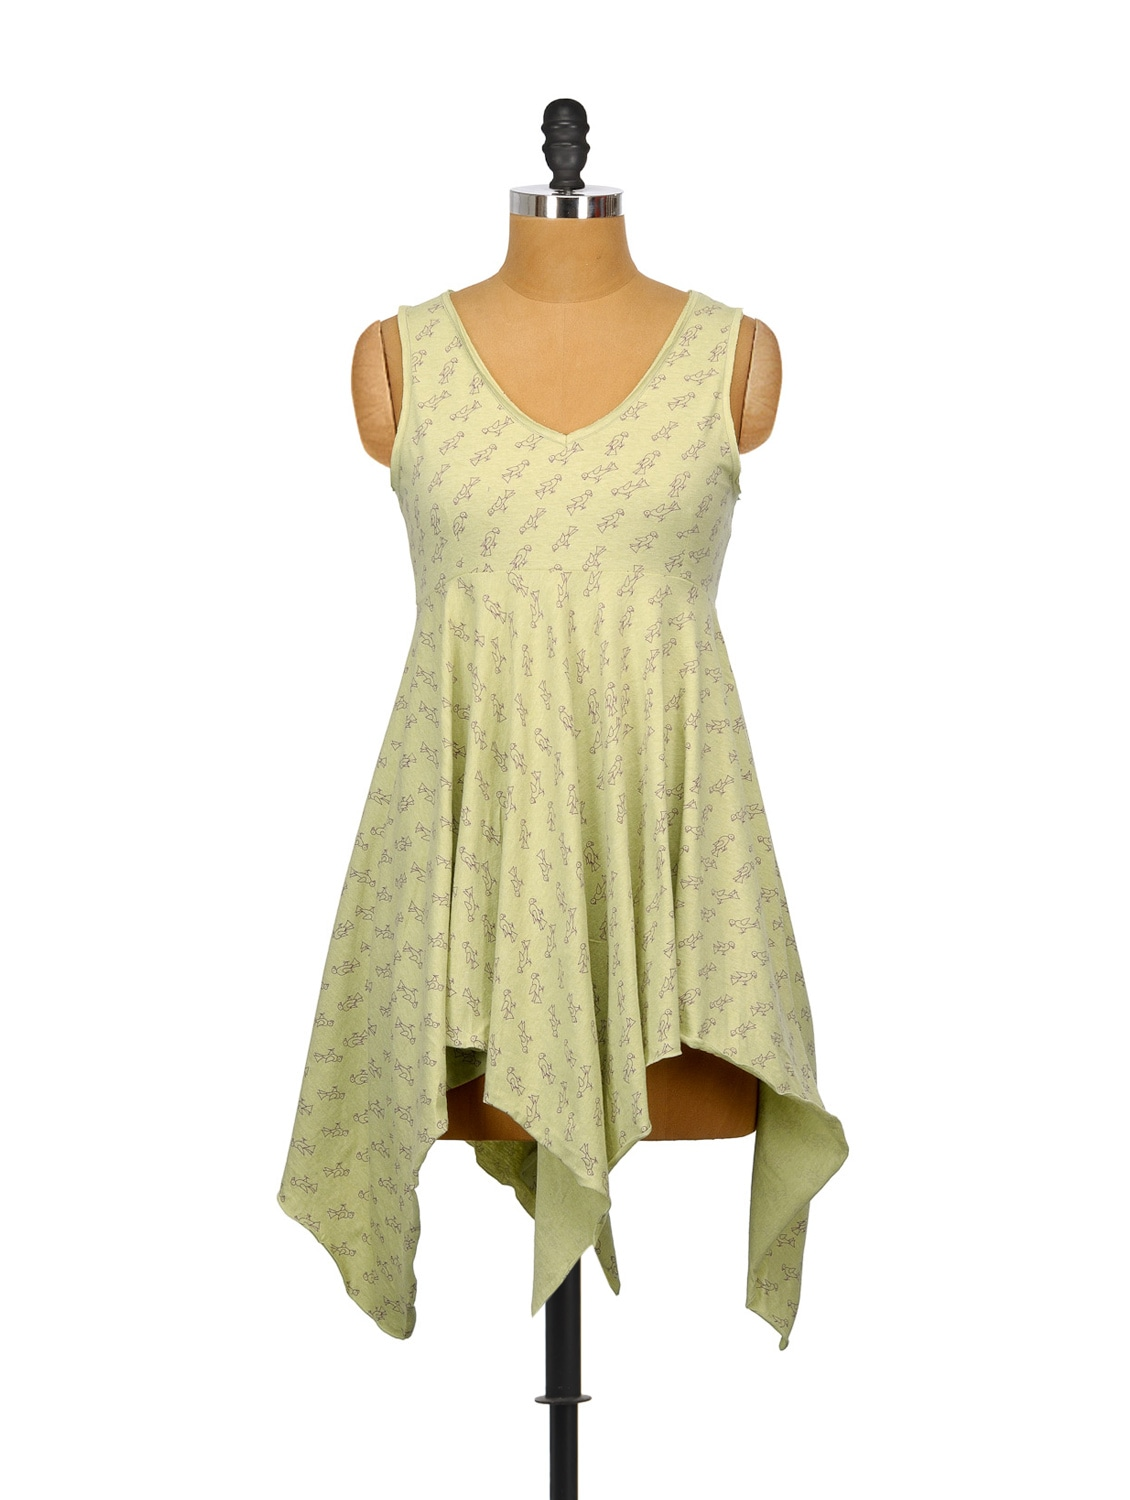 Lime Parrot Print Asymmetrical Dress - Indricka